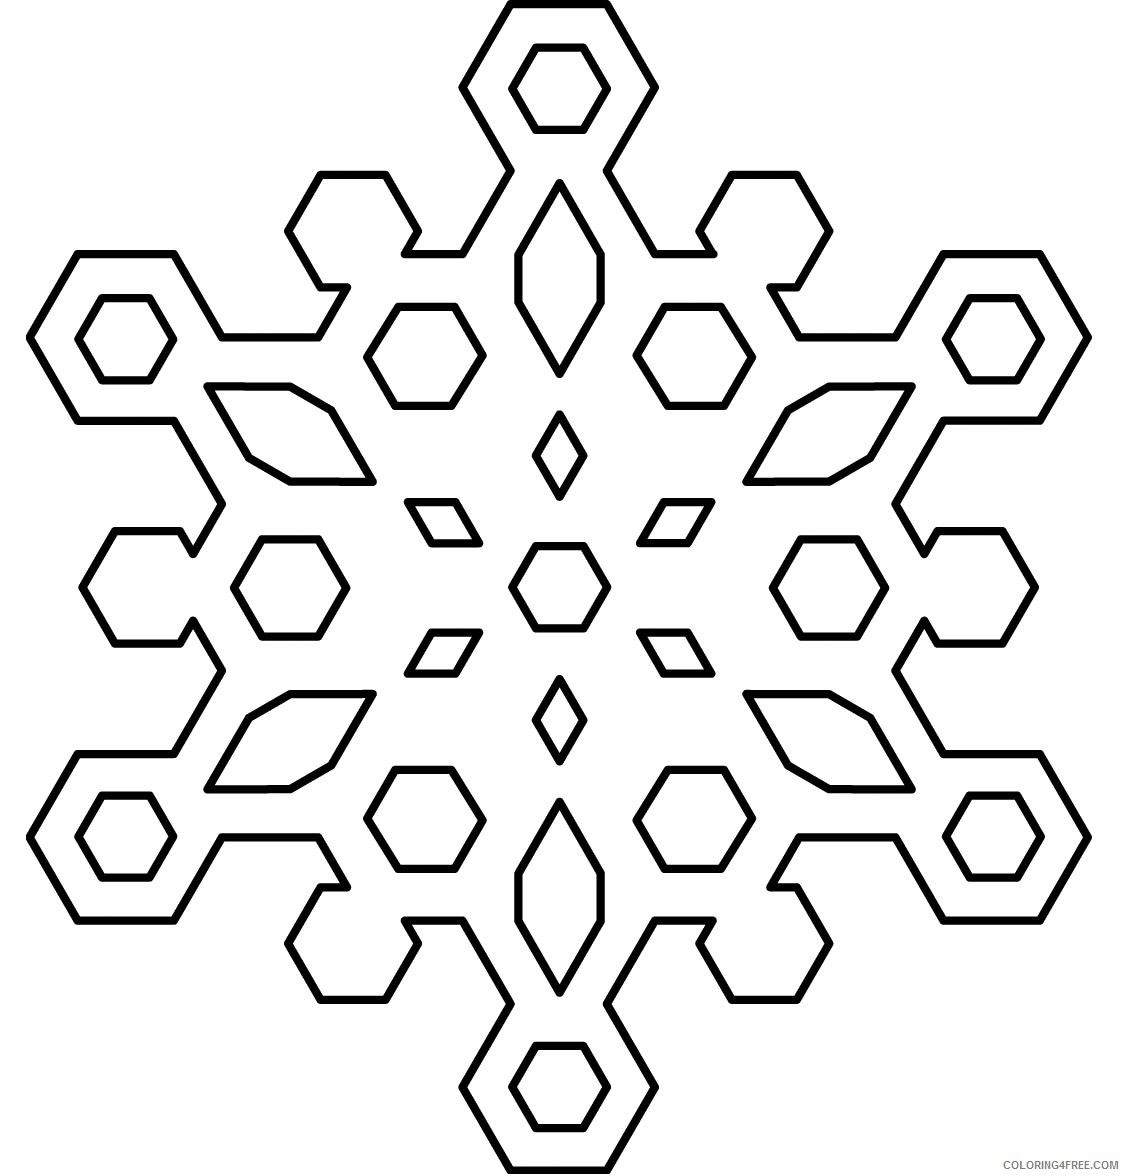 It's just a graphic of Printable Snowflake Stencils within easy